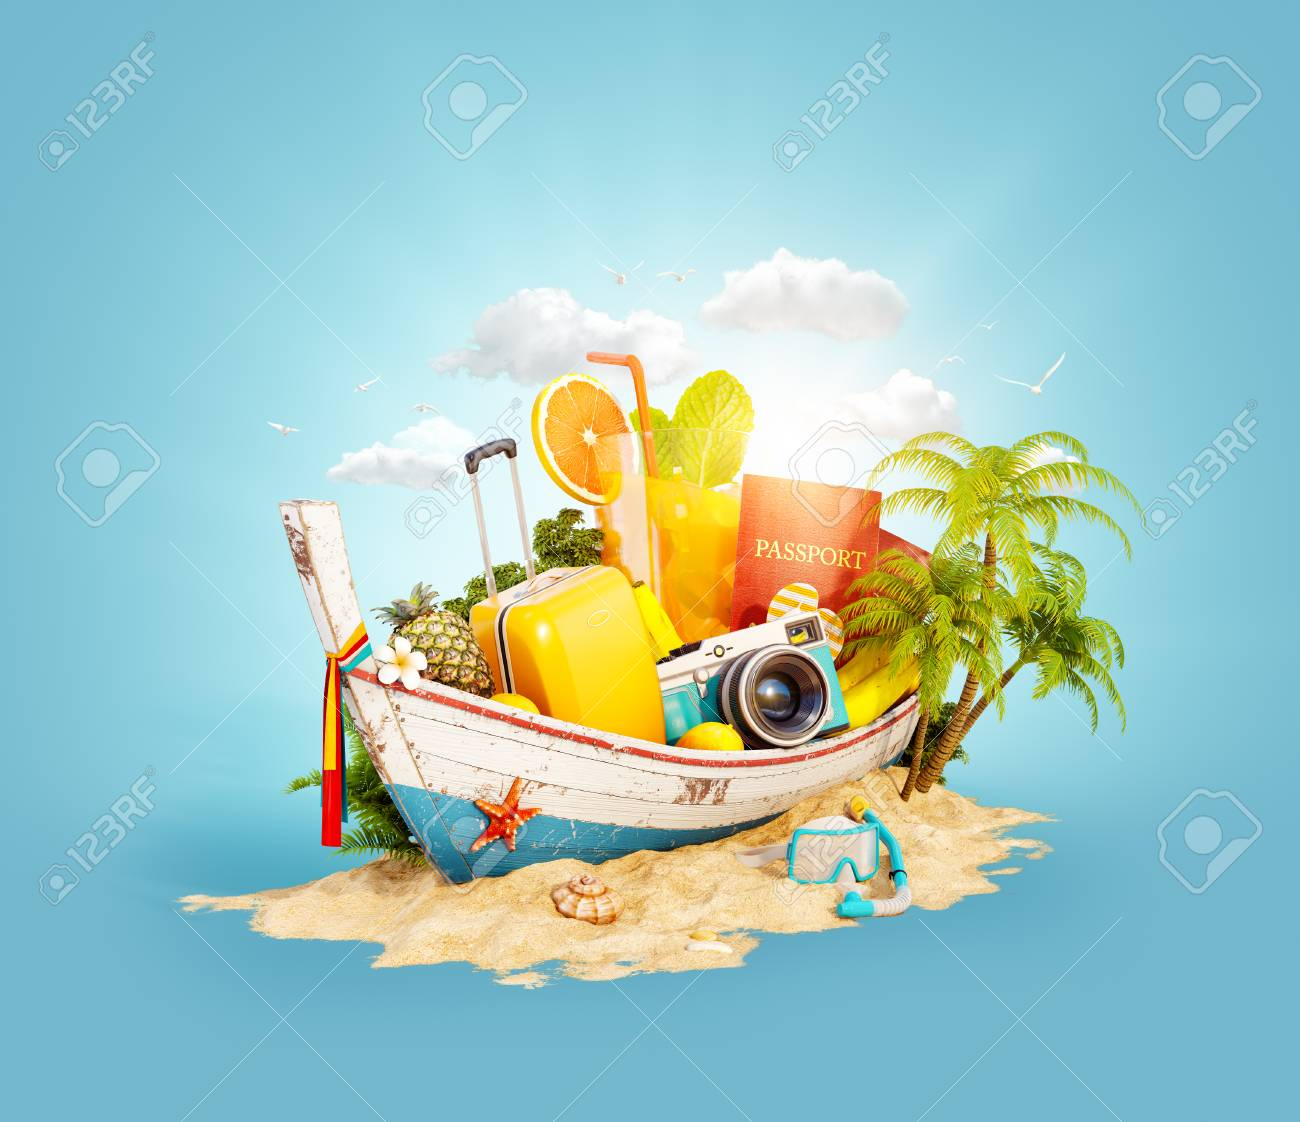 Beautiful Thai boat with suitcase, passport and camera inside on sand. Unusual 3d illustration. Travel and vacation concept. - 96035224